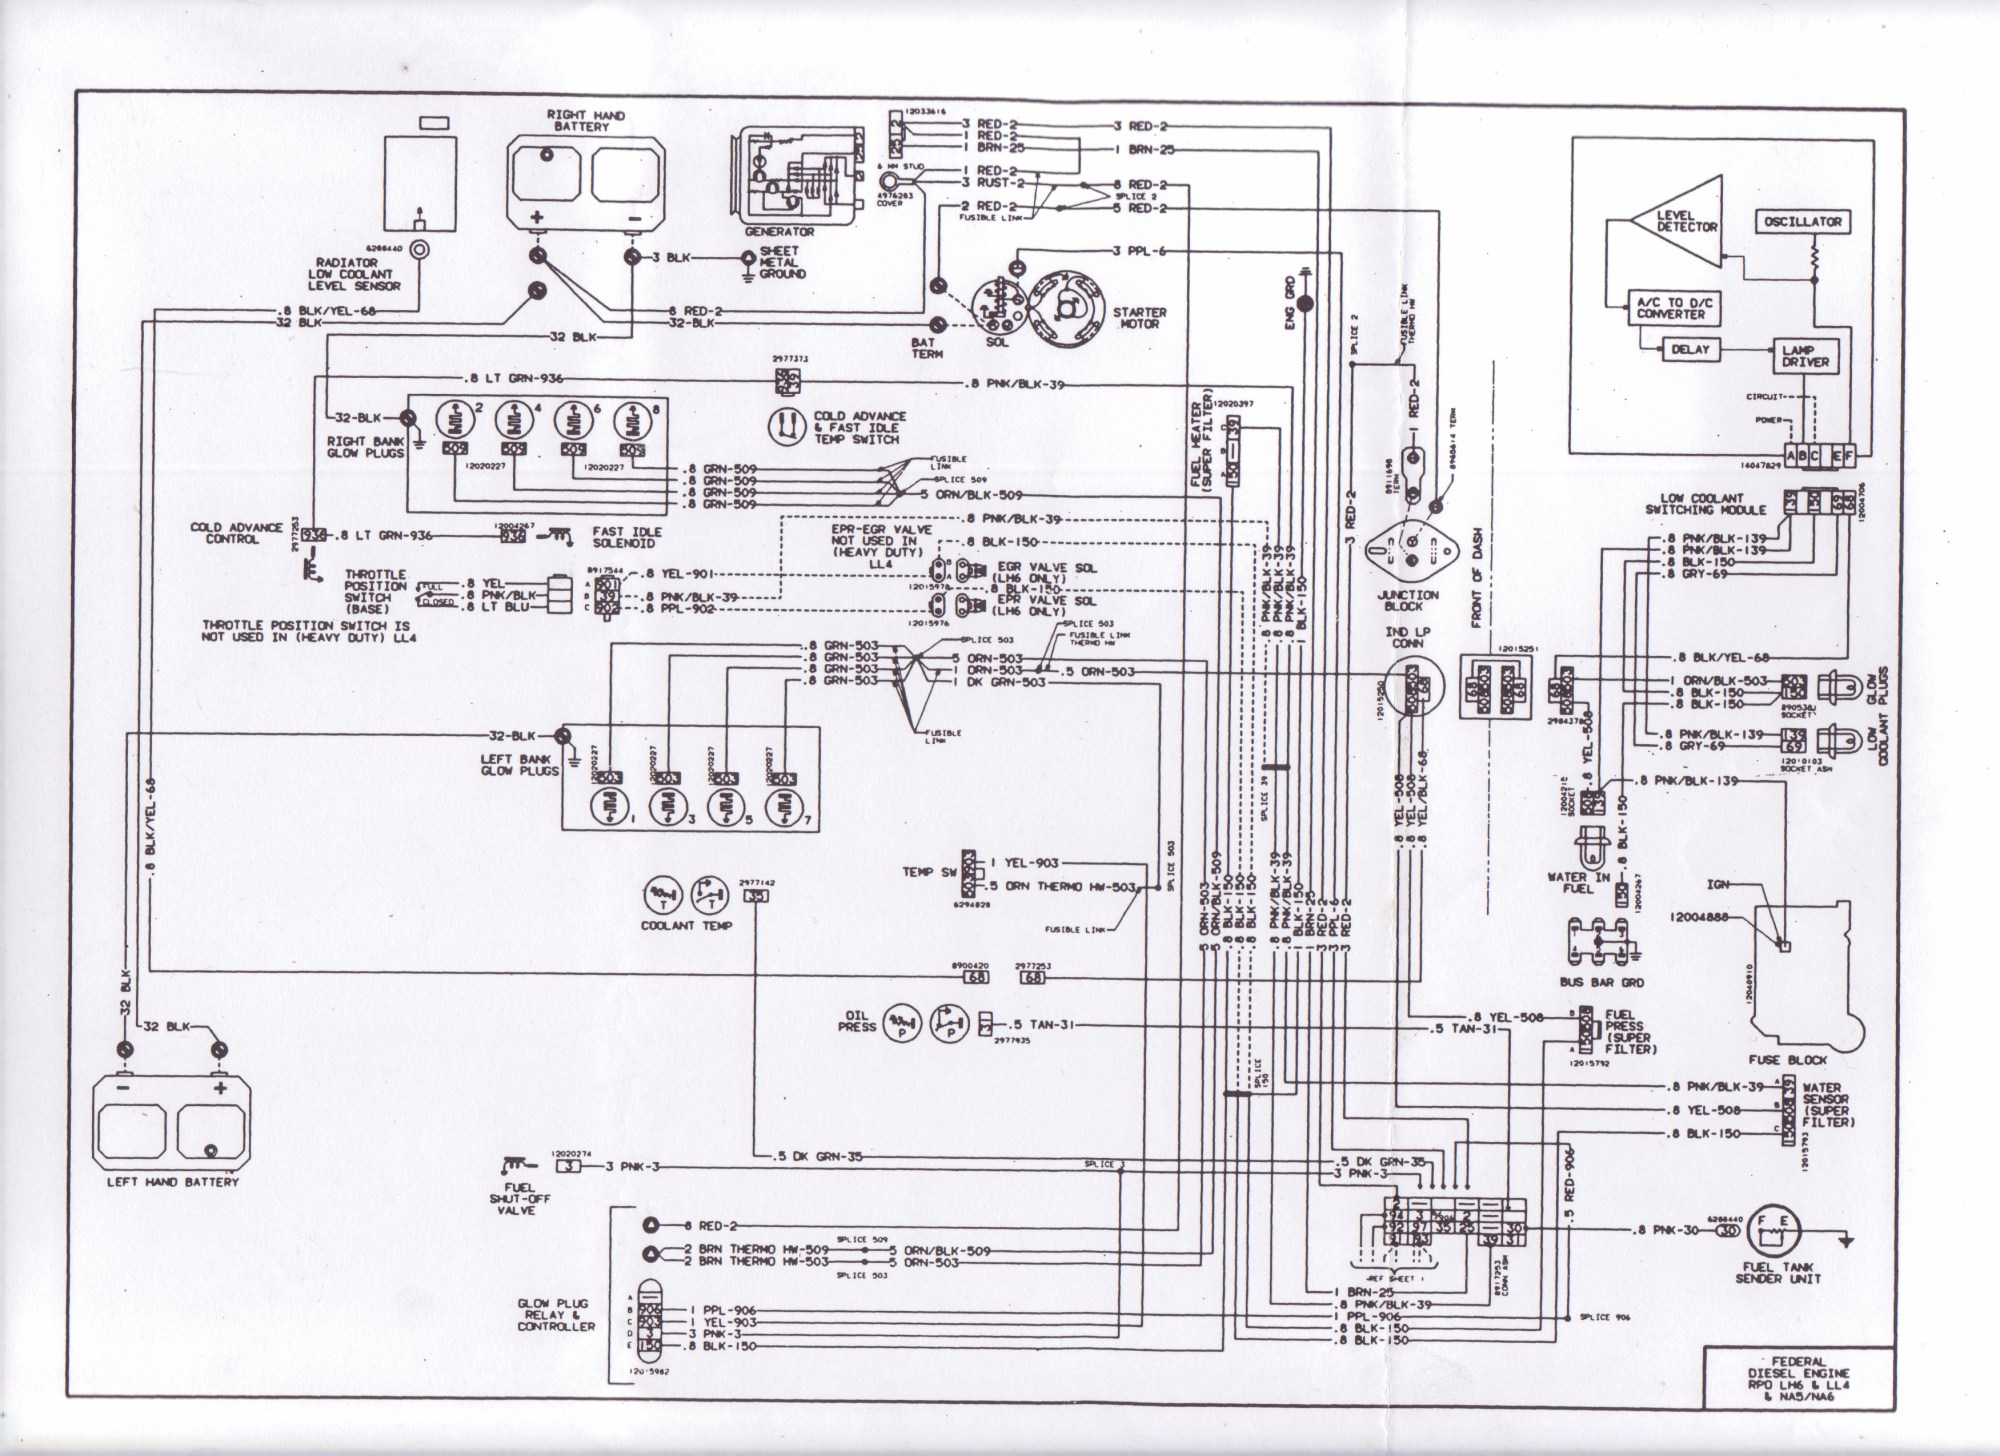 hight resolution of 2001 chevy silverado wiring harnes diagram